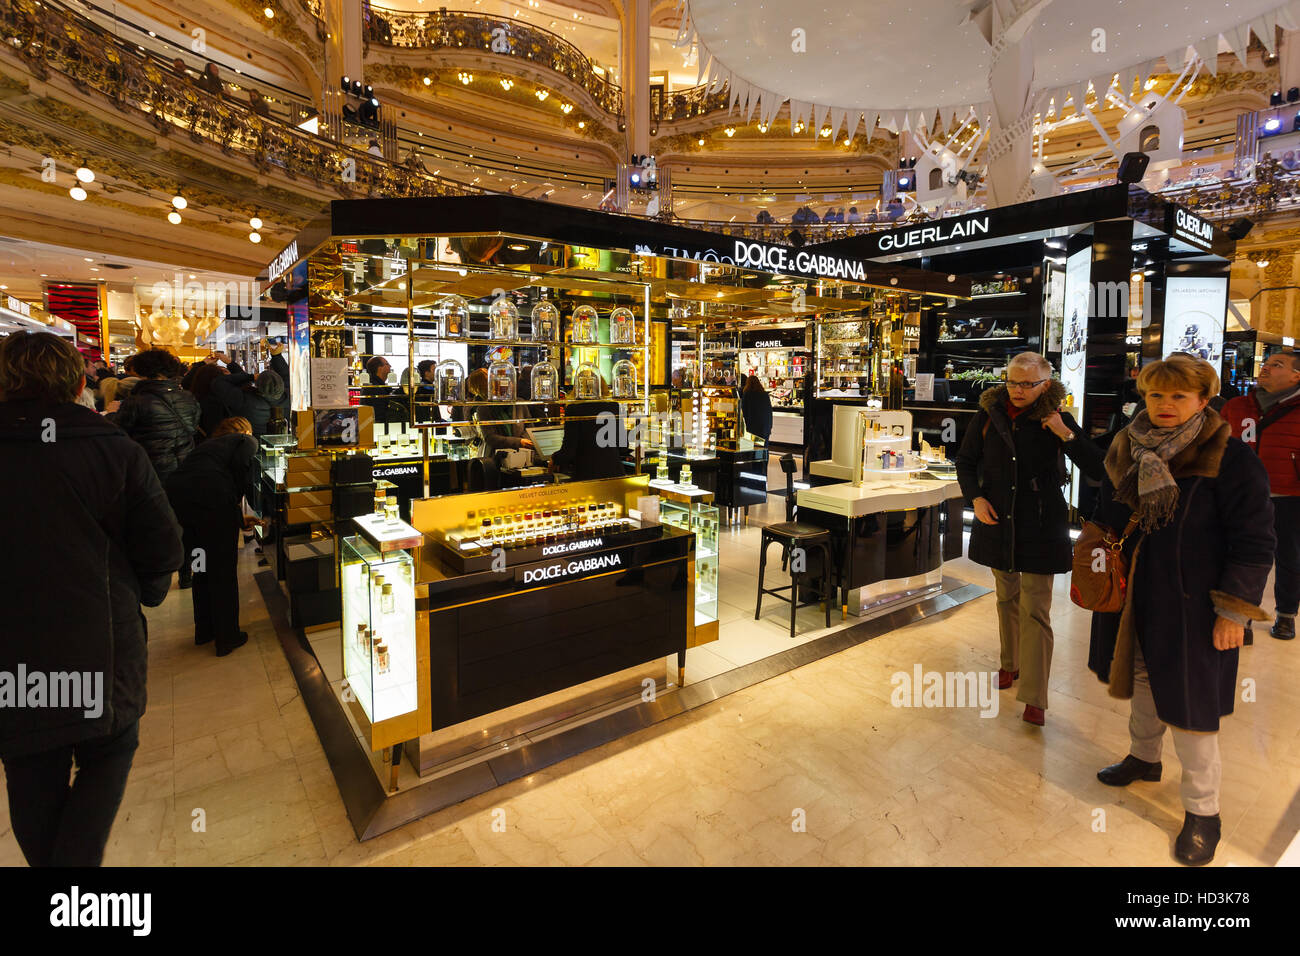 Paris, France, December 4, 2016. First shopping Sunday in Galeries Lafayette, Dolce & Gabbana shop wait for - Stock Image